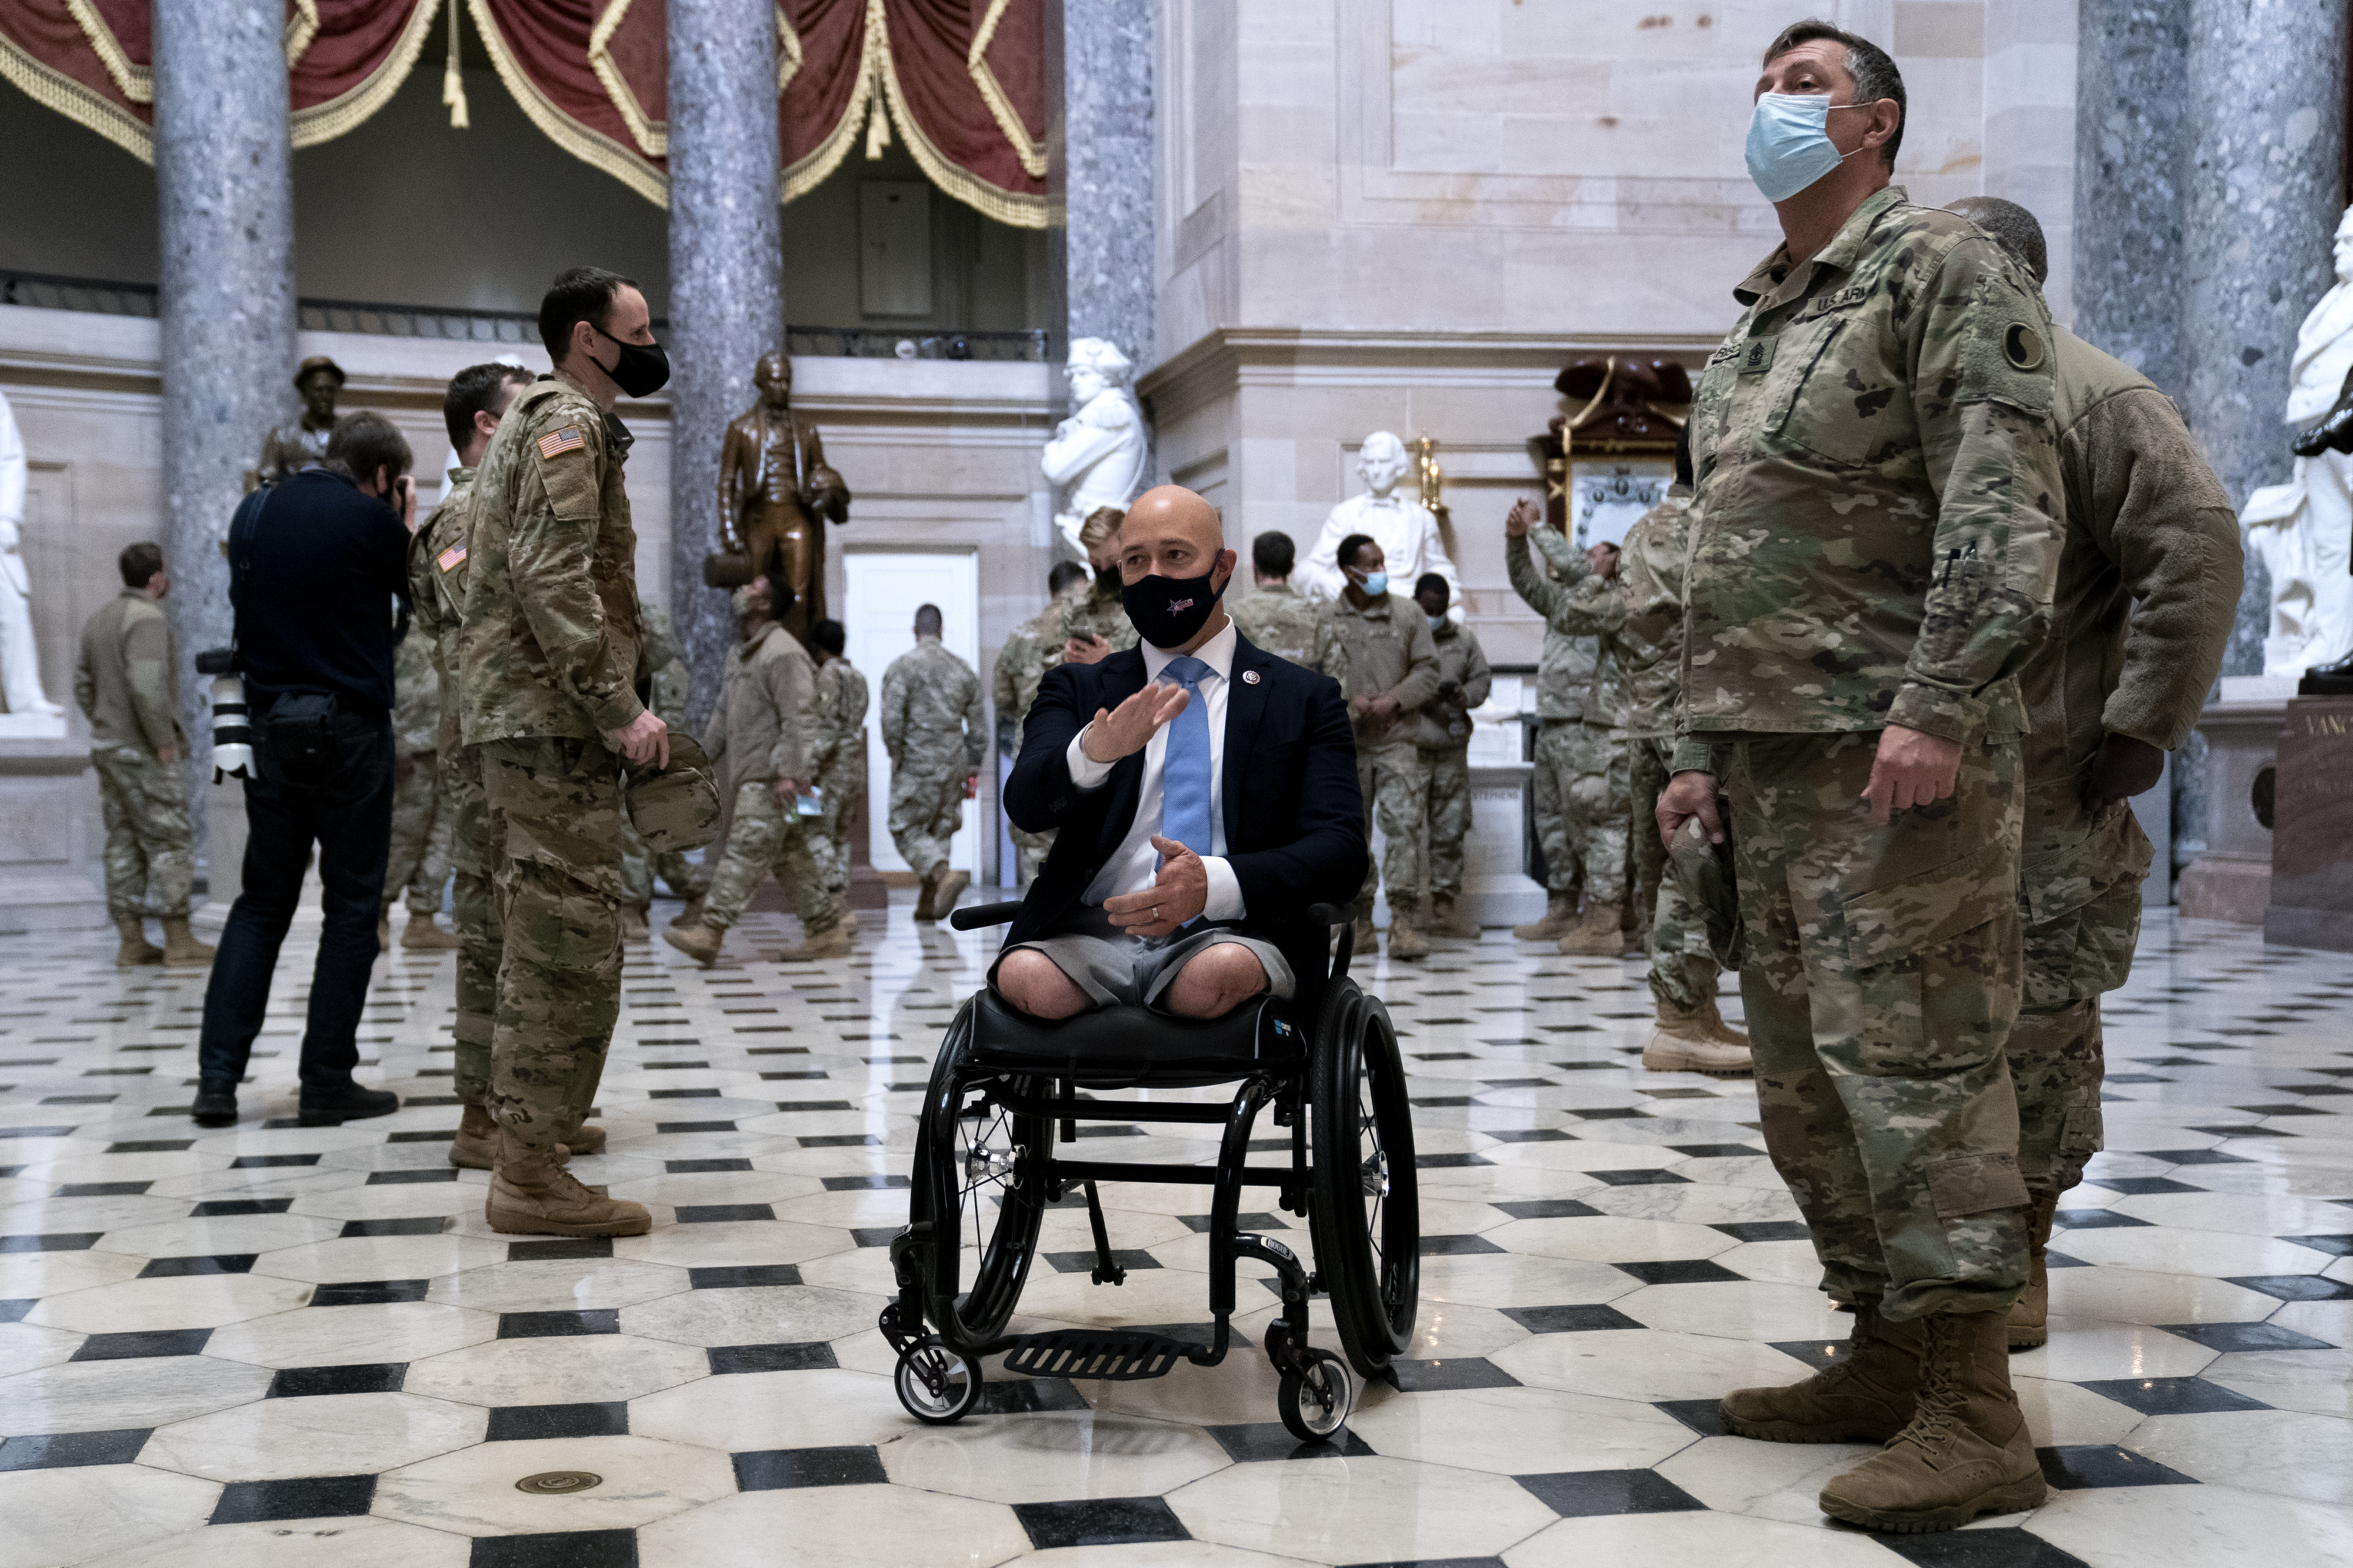 GOP Afghanistan vets honor military sacrifices, reflect on 9/11 two decades later